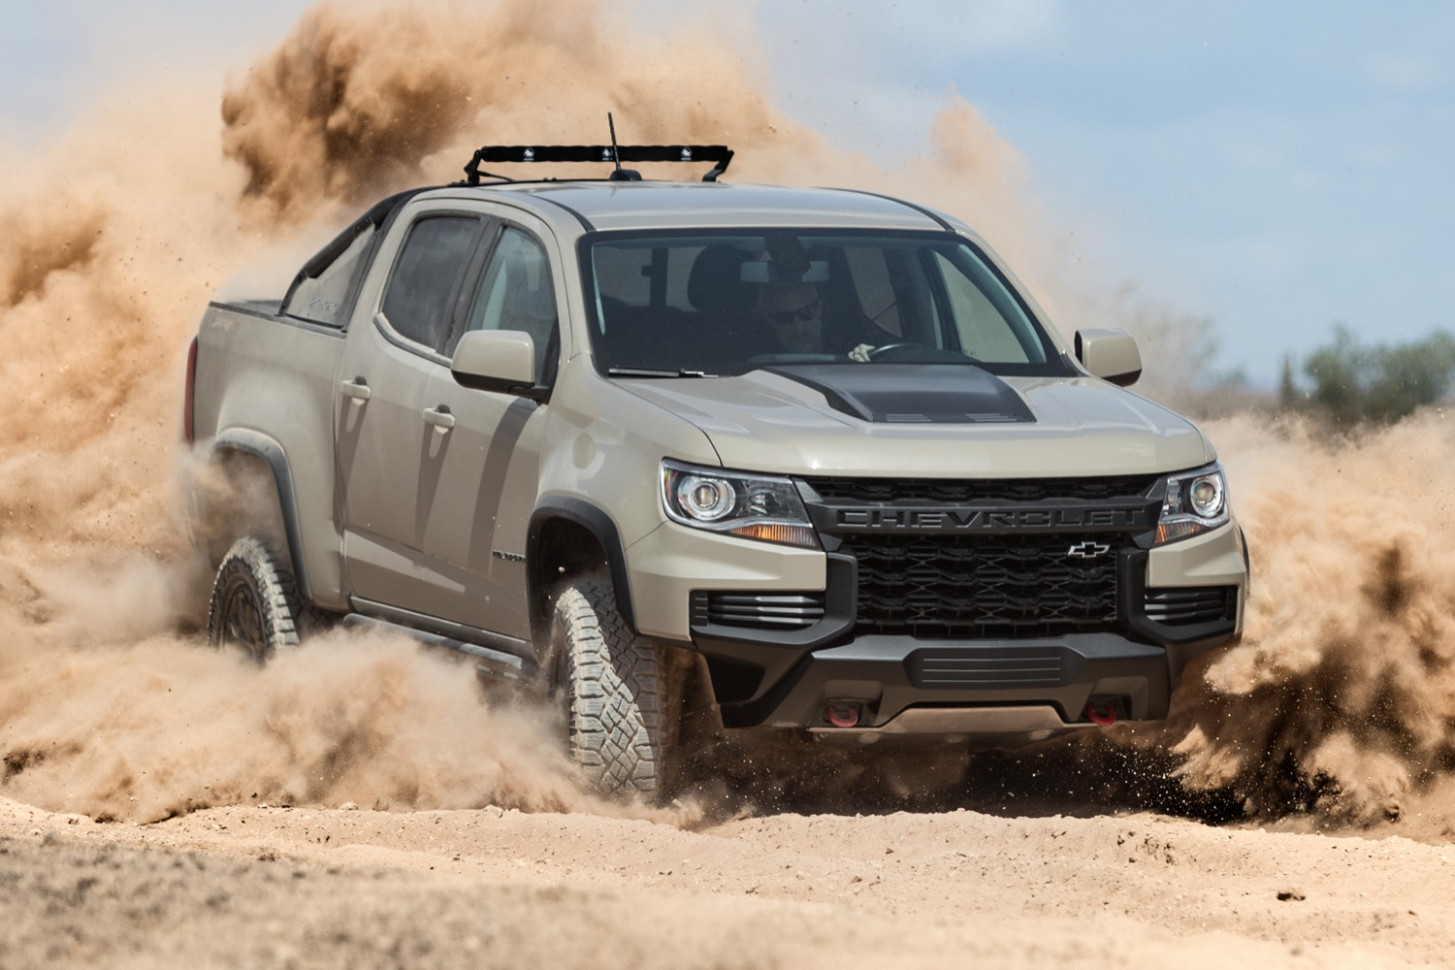 Redesign and Concept 2022 Chevy Avalanche